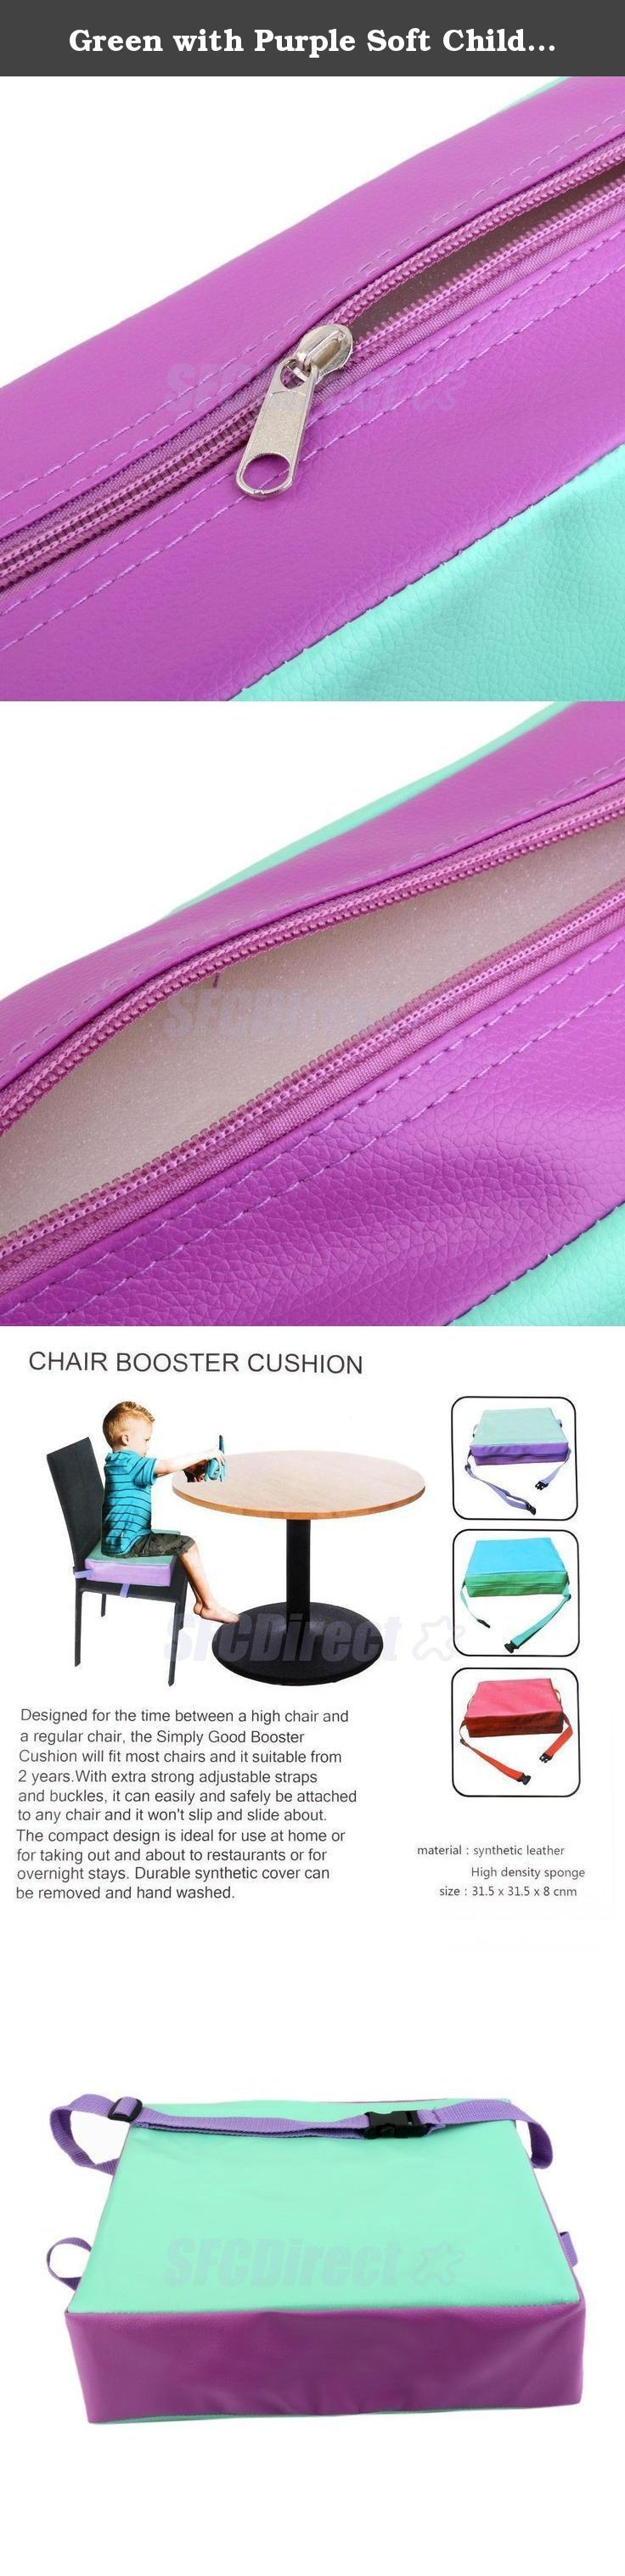 Green with Purple Soft Children Baby Toddler Chair Booster Kids Highchair Seat Pad Dining Cushion. Life baby sitting in the chair to eat, because the body is not enough Gao, very convenient, even bought a special chair baby, but once their children grow up, they can not be used, and this time, we can help cushion this increase Gao to your baby, you can adjust the tightness to be split out sponge to clean and waterproof synthetic leather, food accidentally fell engage in dirty, as long as…